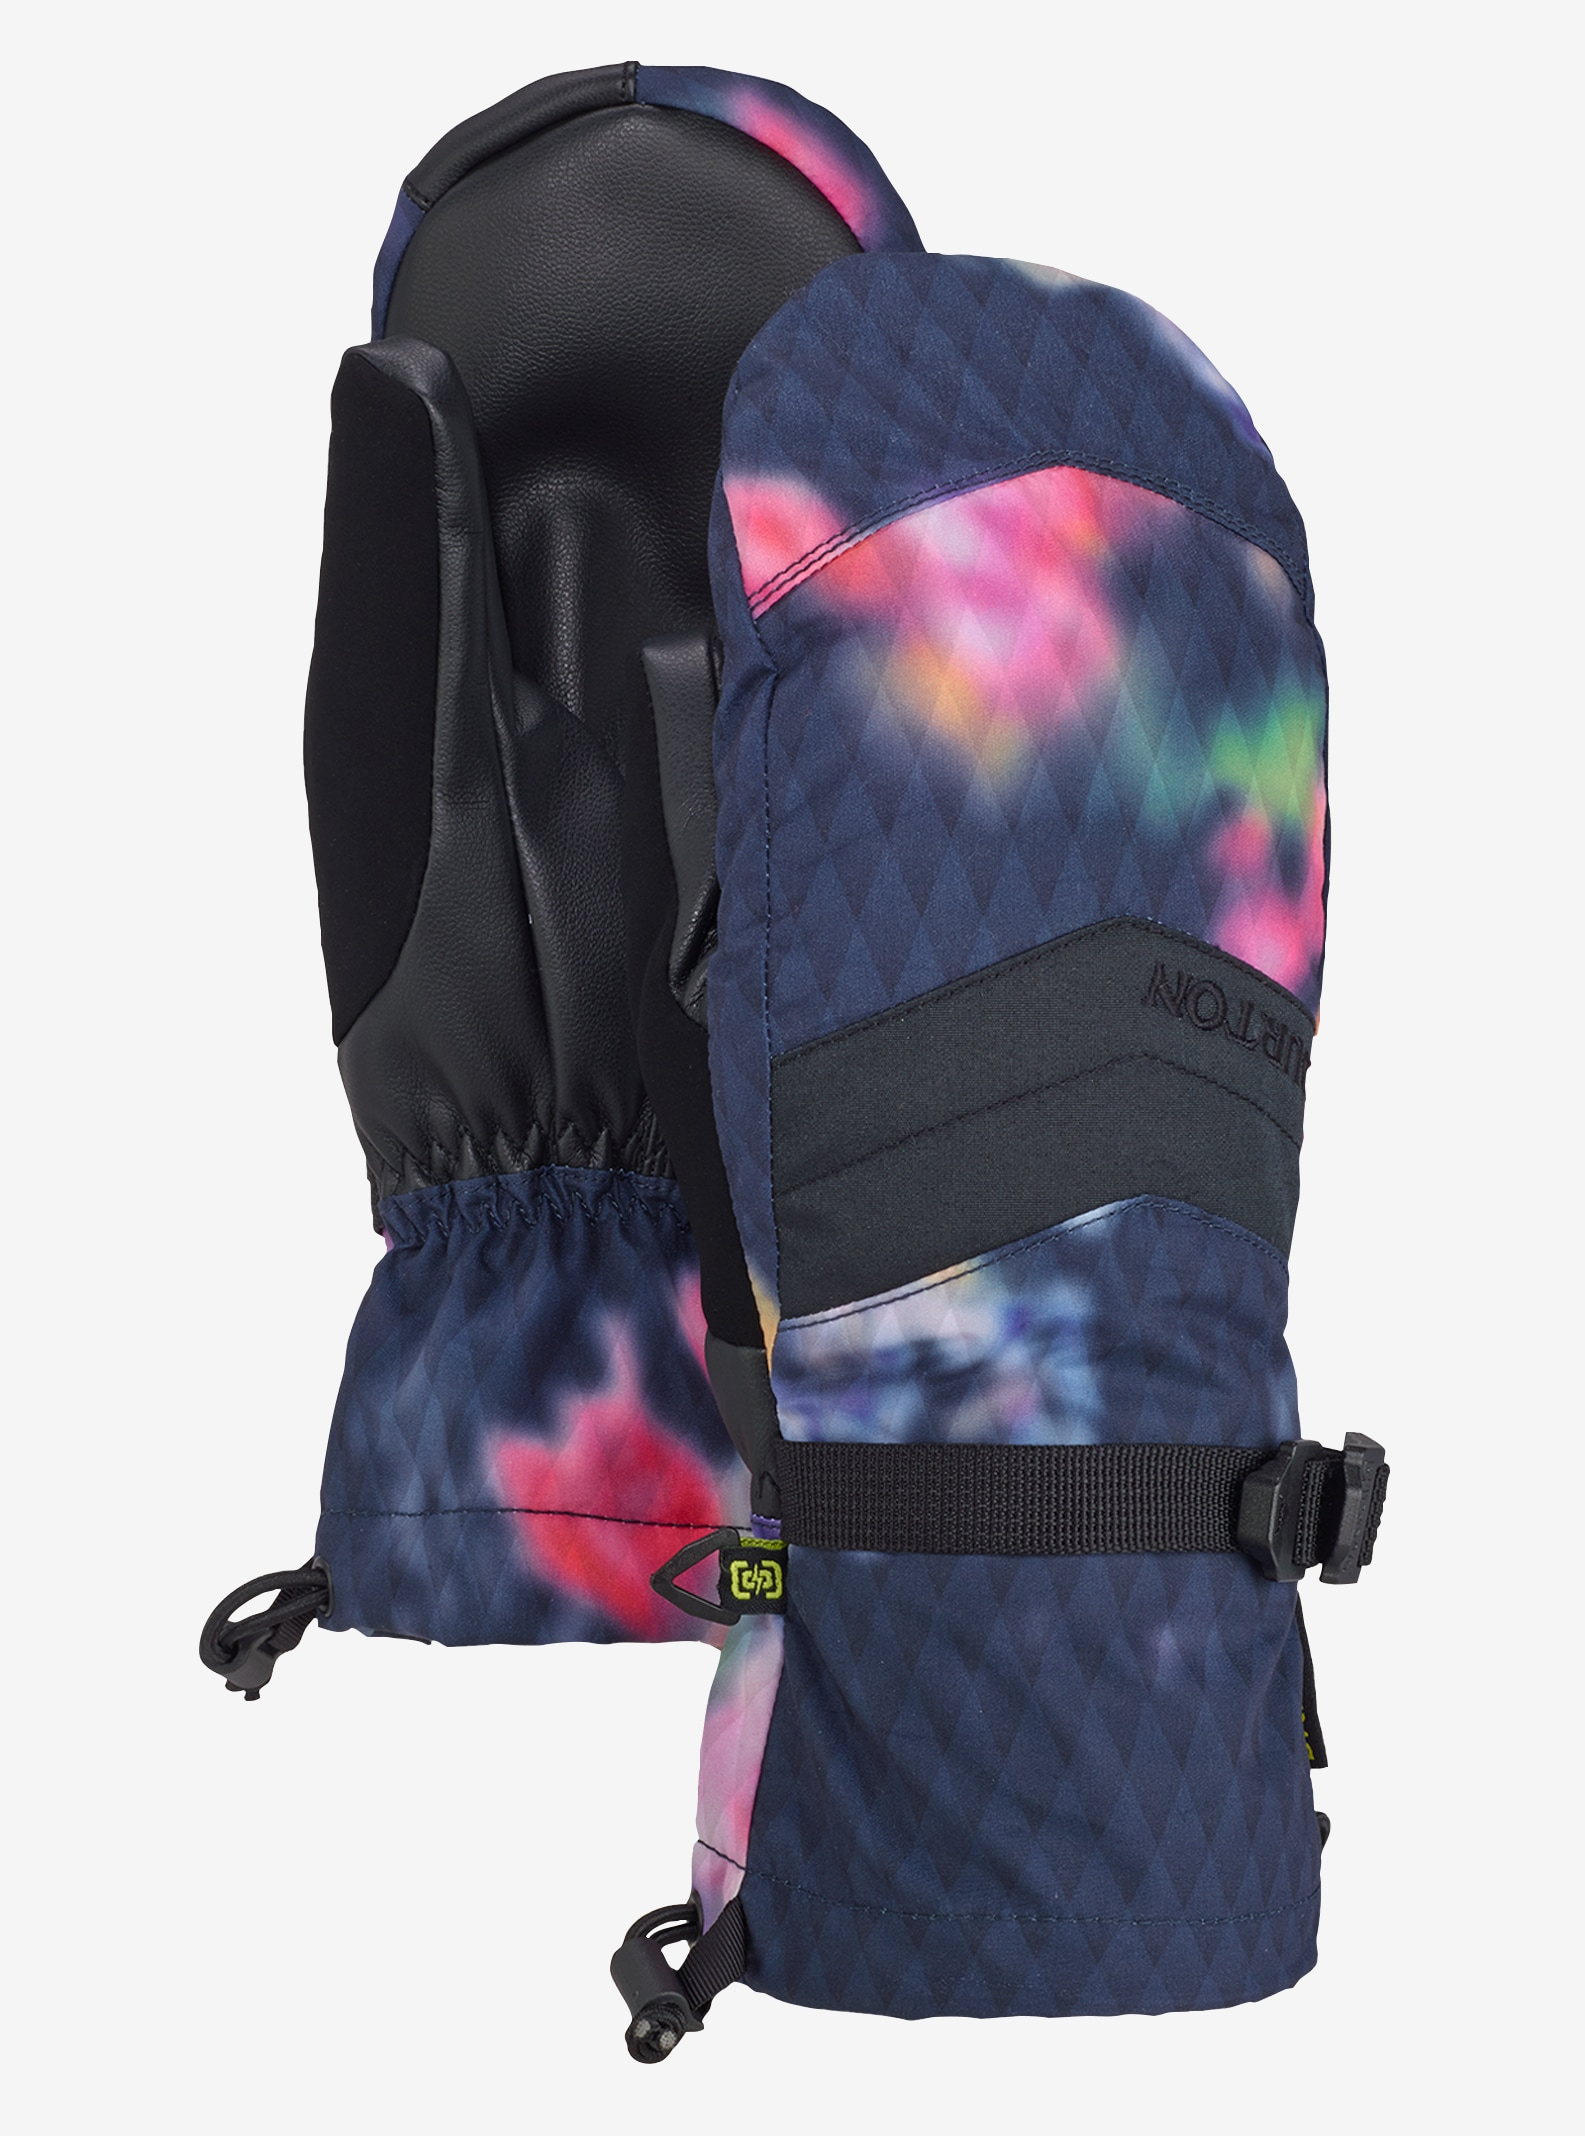 Women's Burton Prospect Mitt shown in Prism Floral / True Black